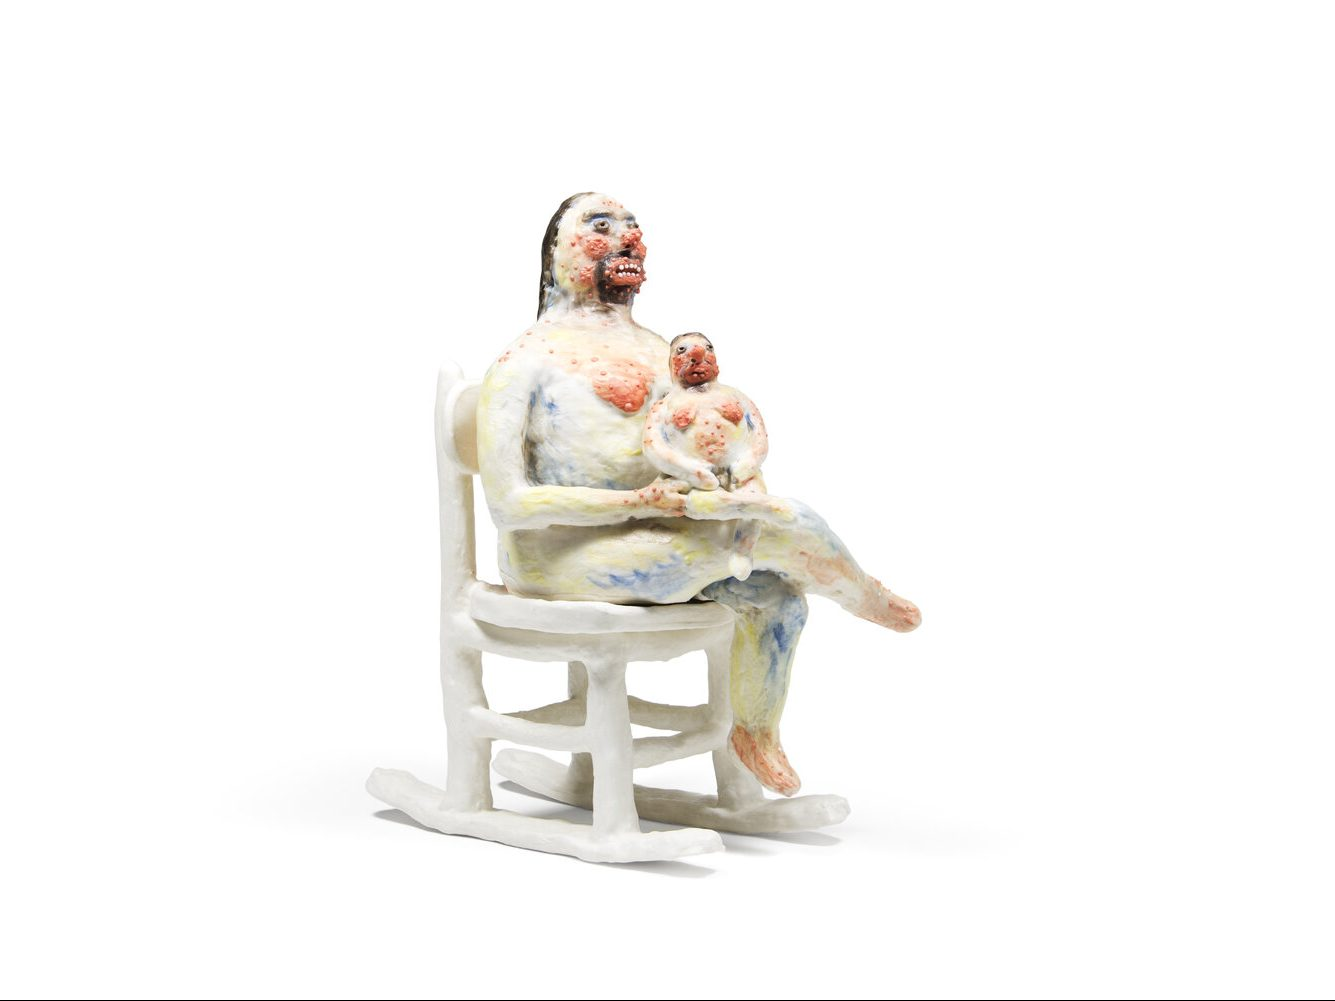 A woman sits in a rocking chair with her legs crosse and a child seated on her lap. They are both crudely sculpted out of a milky material, painted in a cloud of bright colors, and gazing into the distance blankly.